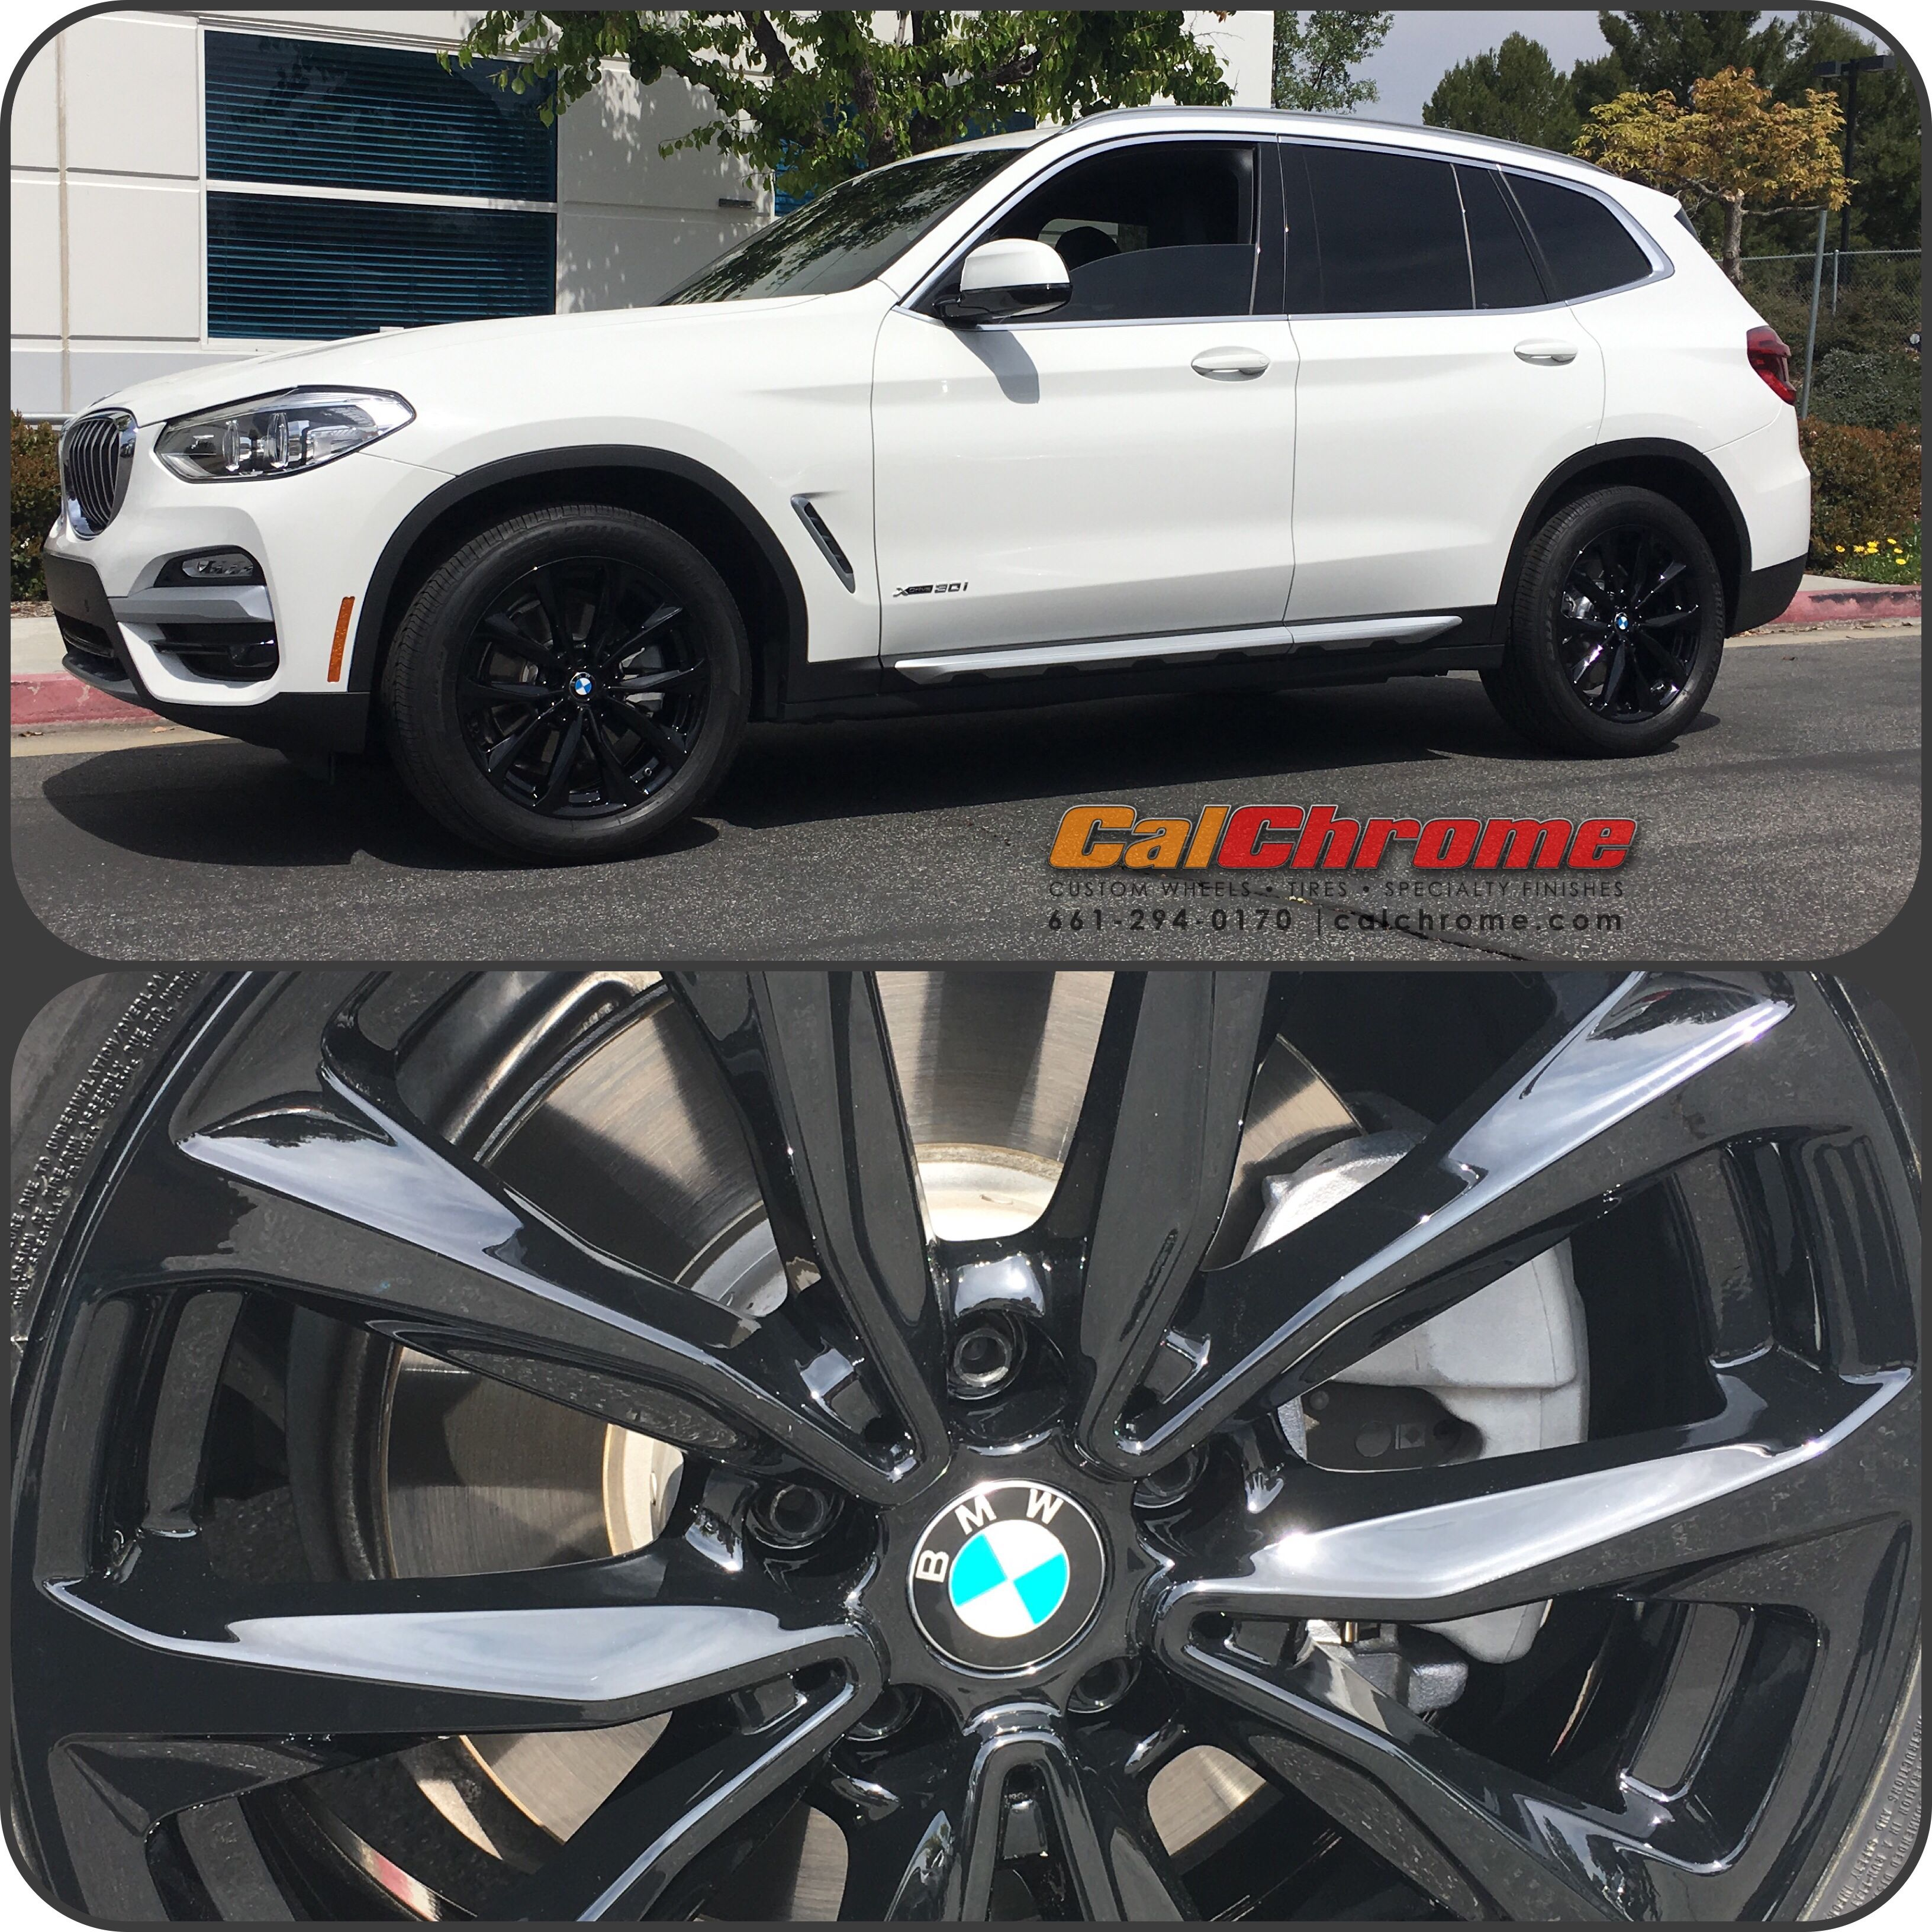 BMW X3 With The #calchrome #ultimatewetglossblack